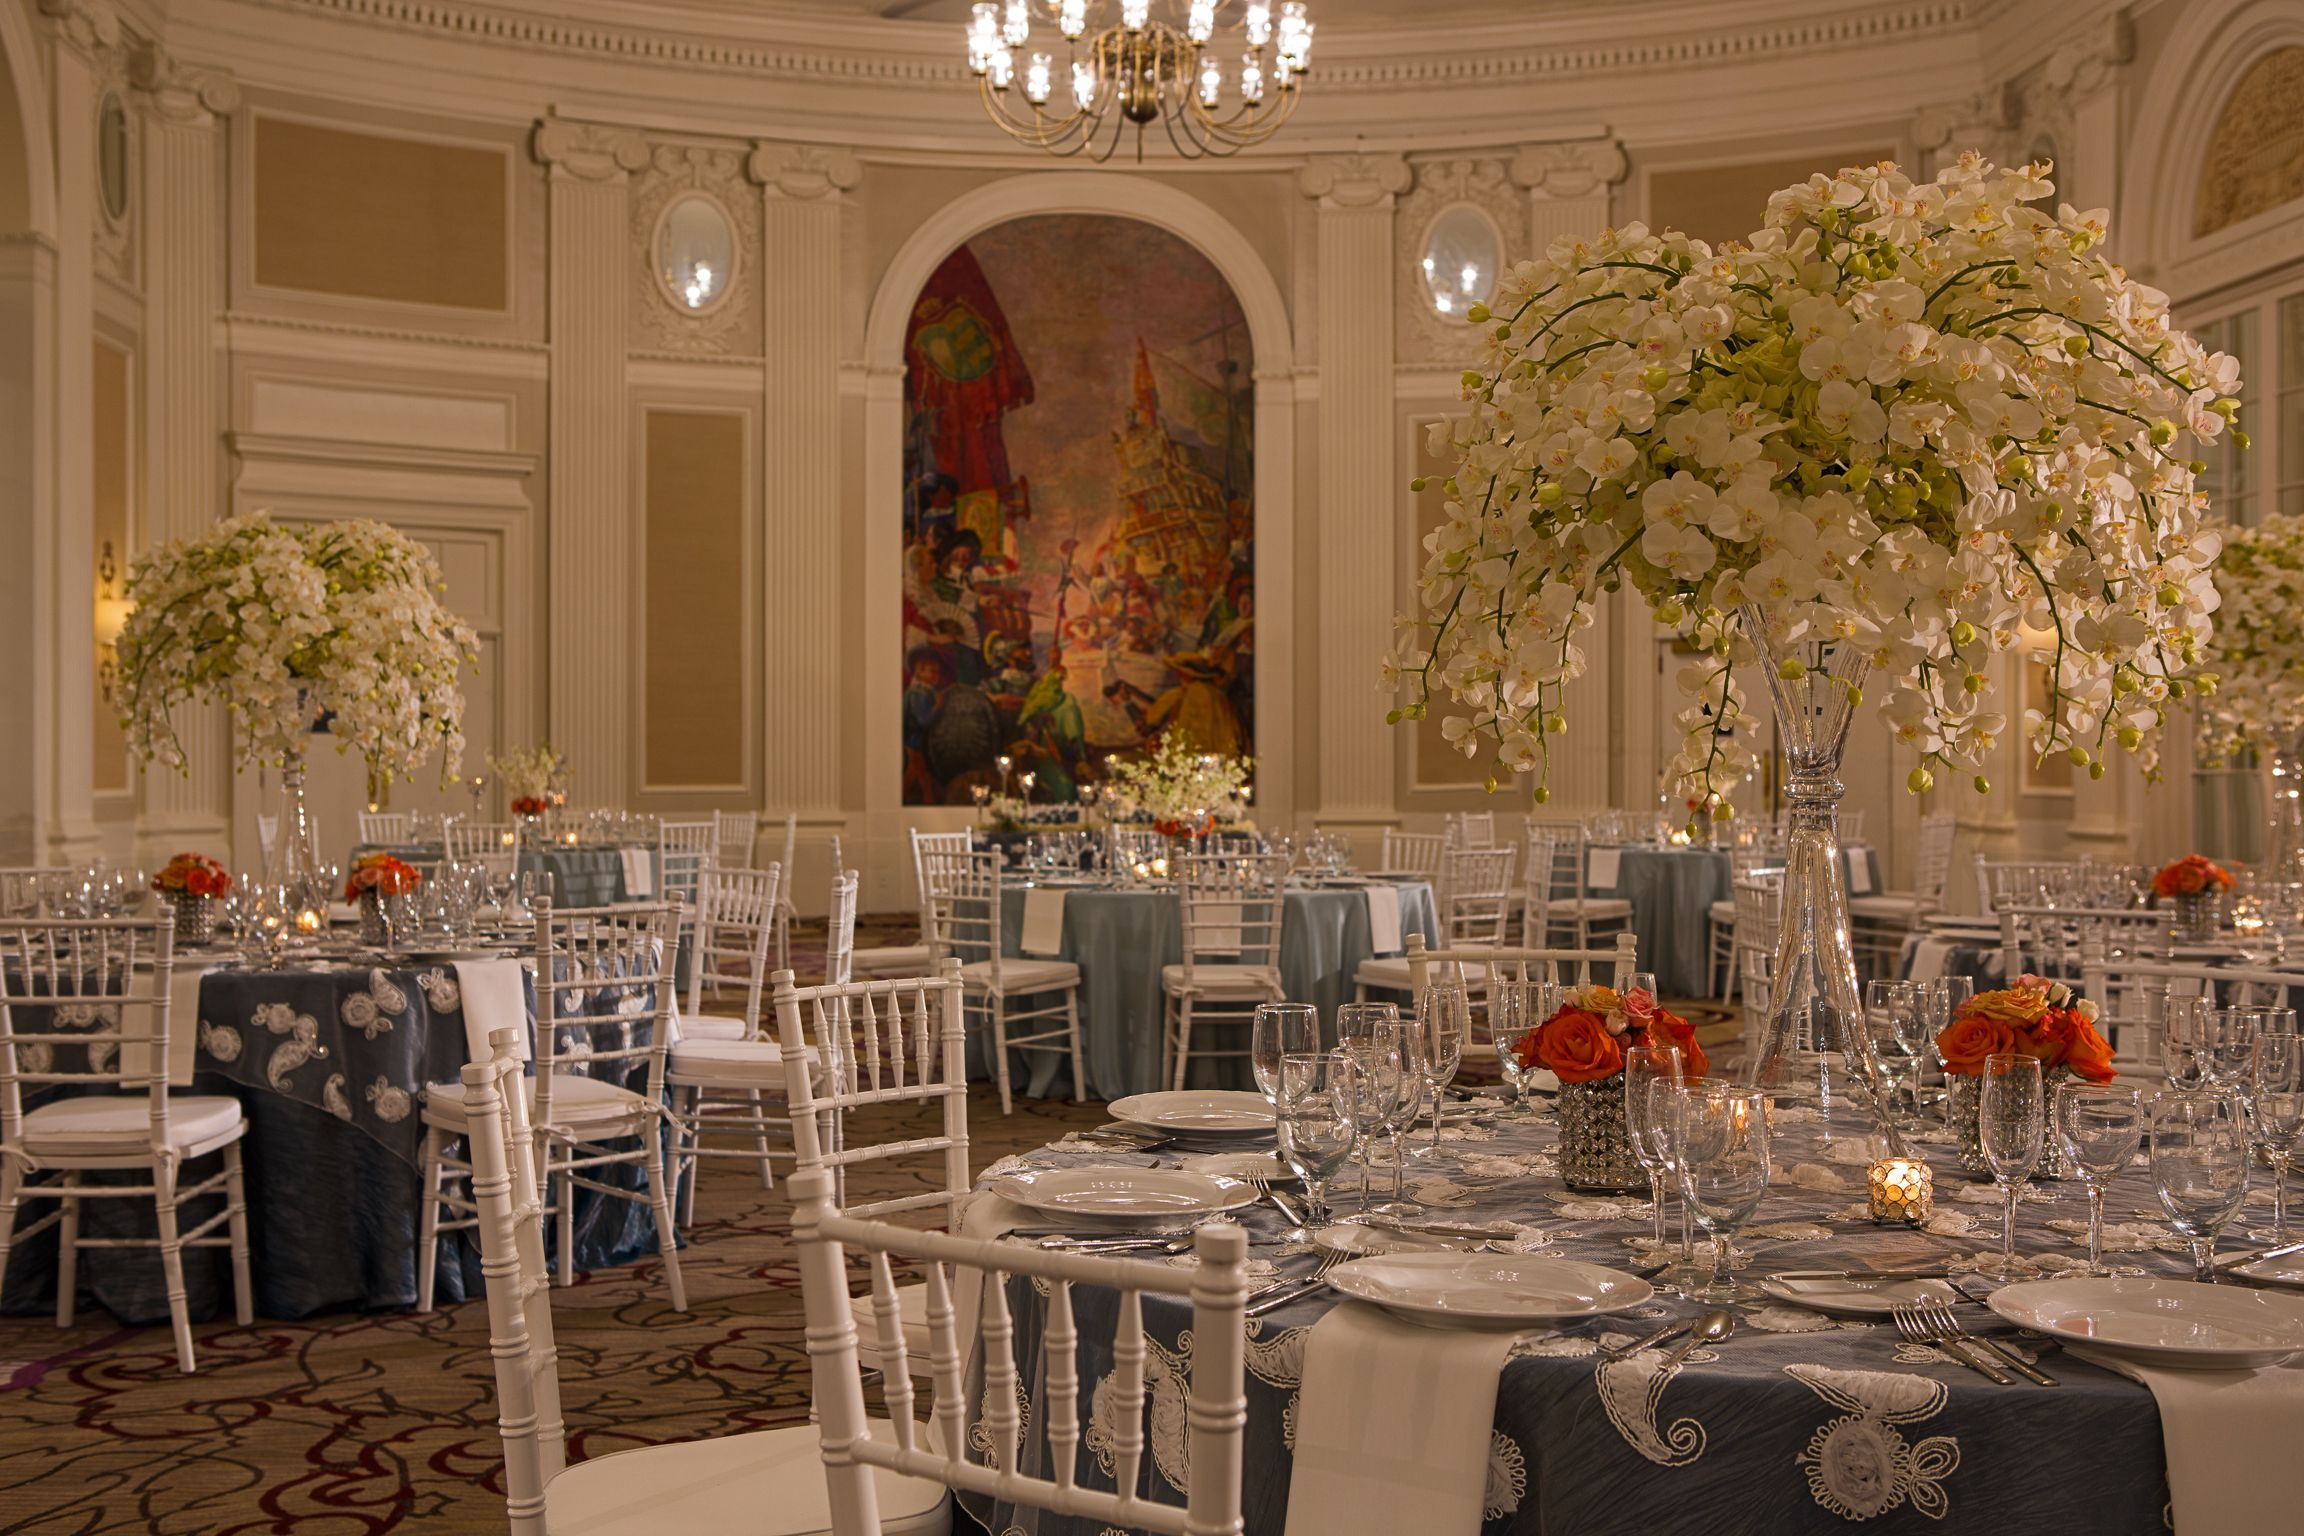 I found this great wedding vendor on The Knot! Peoria